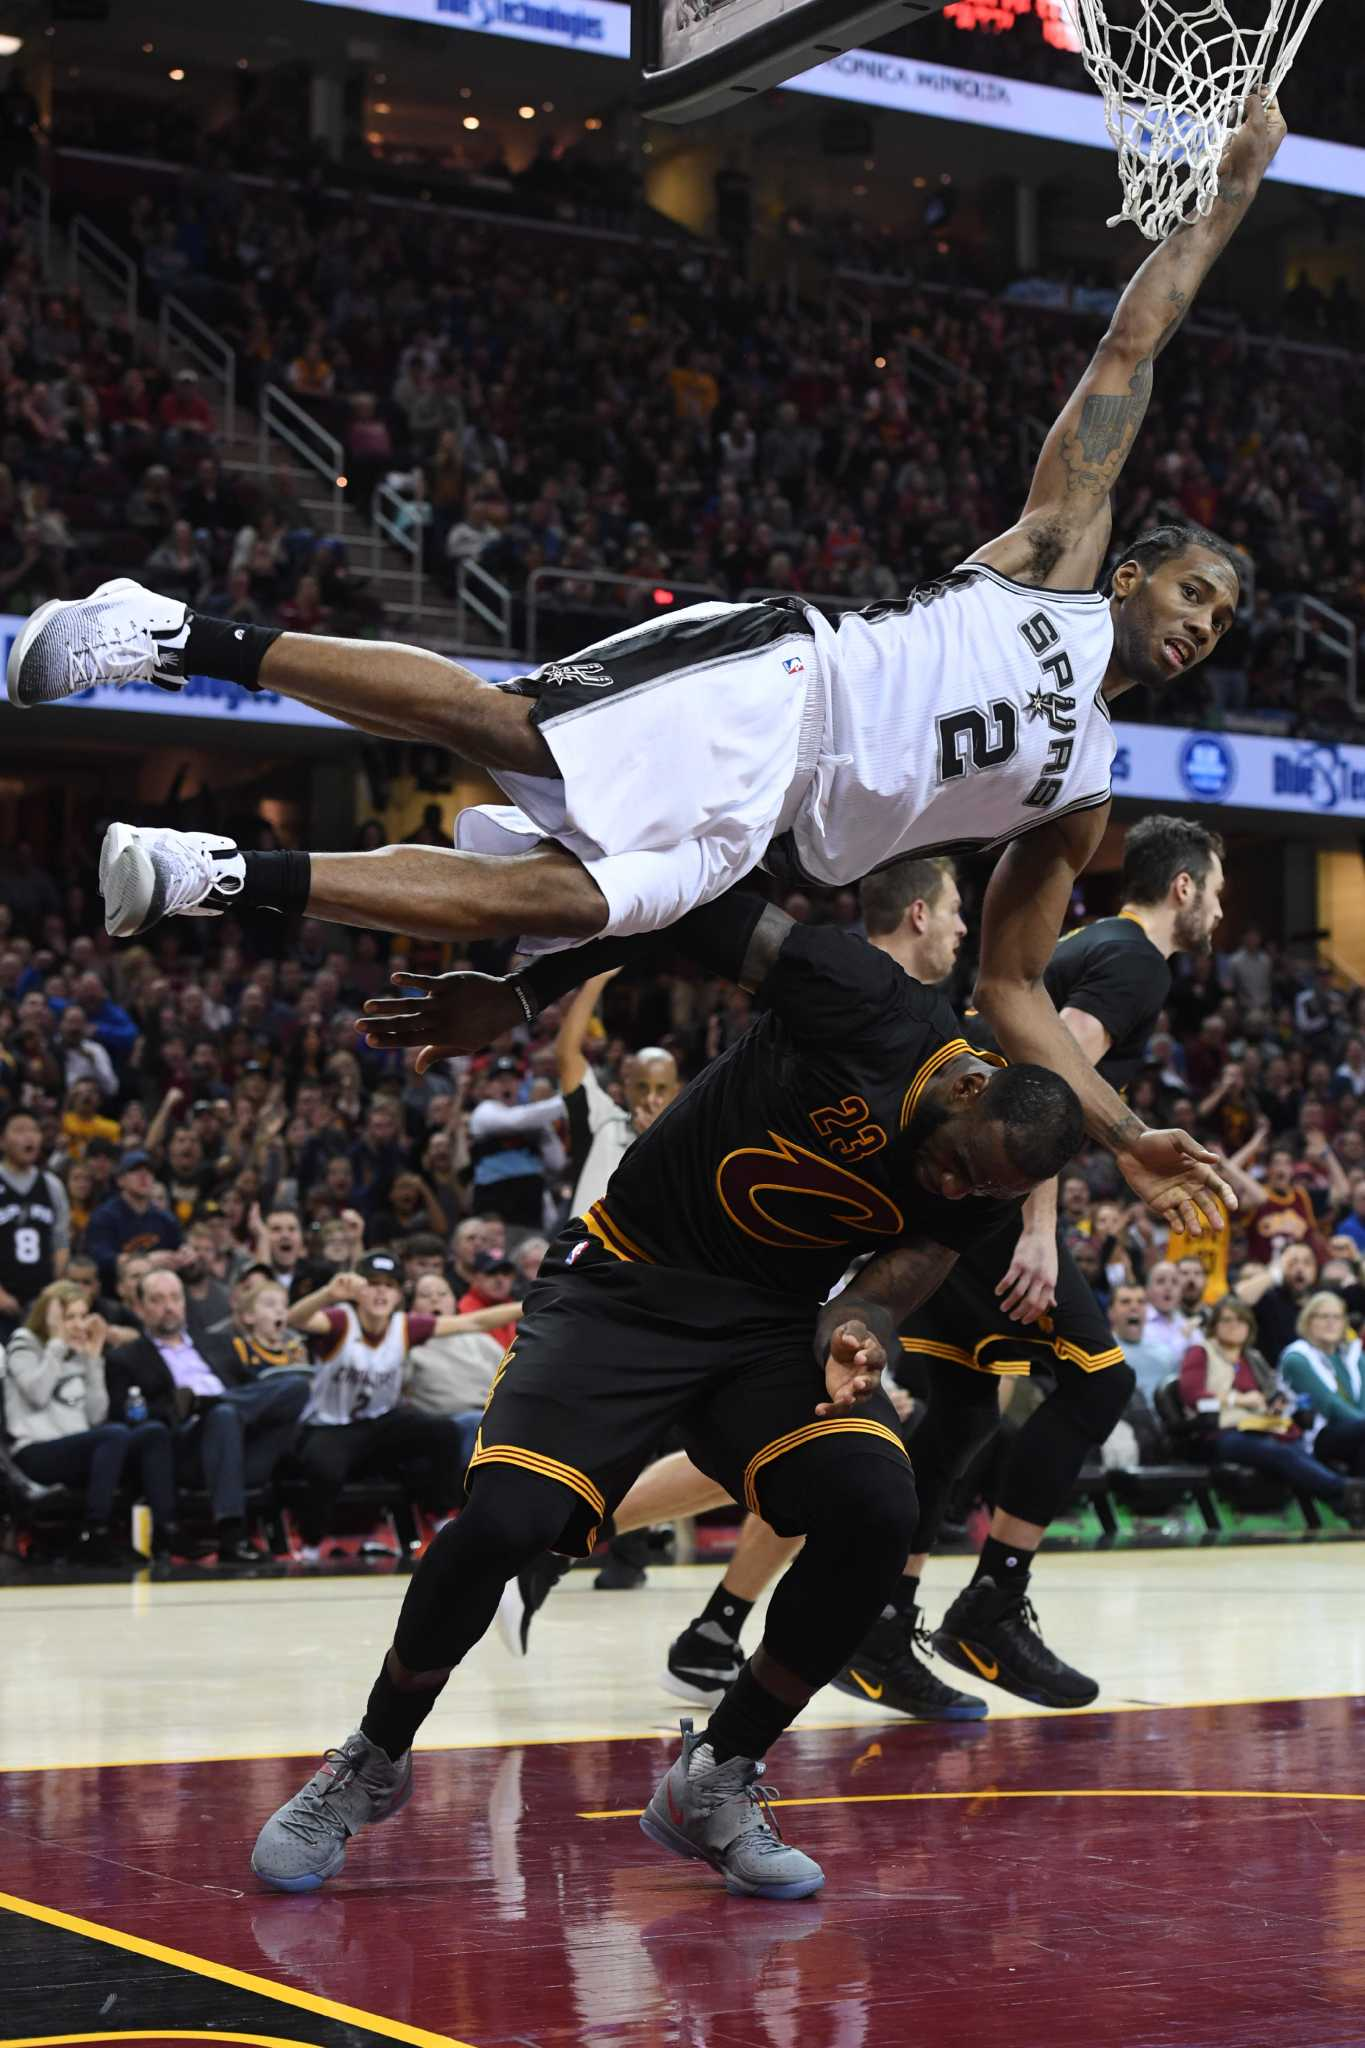 NBA: Kawhi Leonard, Spurs hold off Cavaliers in overtime